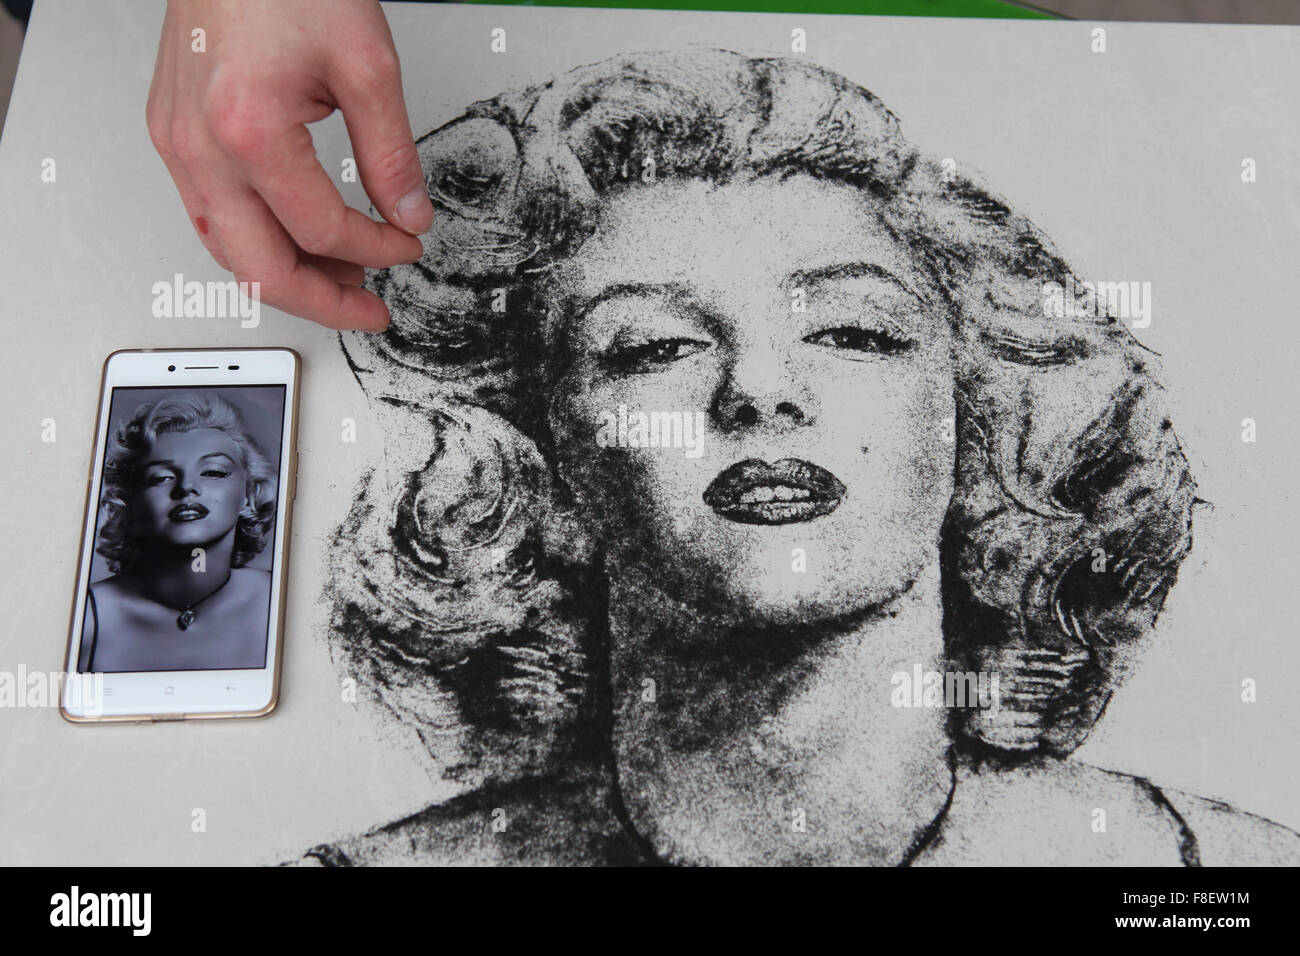 Sanmenxia. 9th Dec, 2015. Photo taken on Dec. 9, 2015 shows a Marilyn Monroe's portait drawed with hair pieces - Stock Image